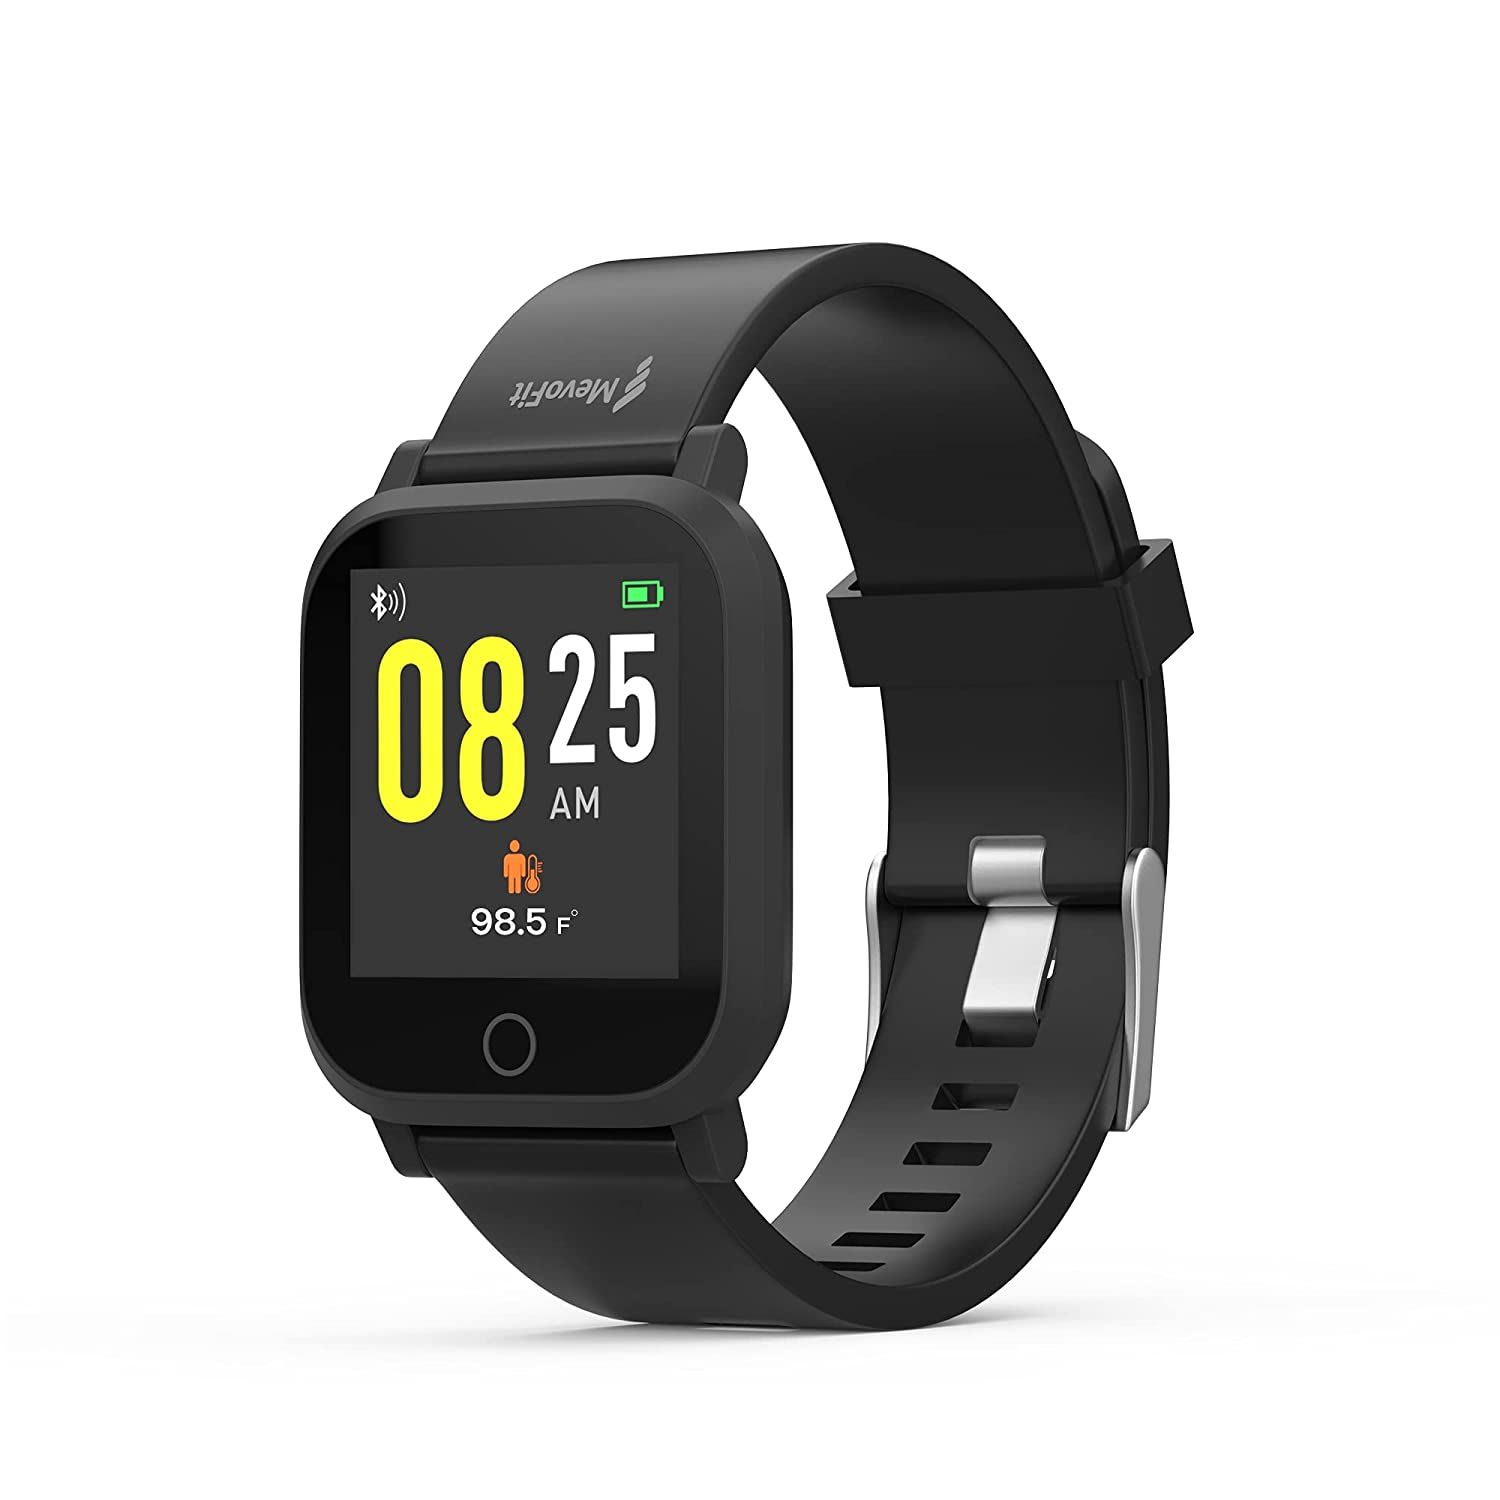 Mevofit Air X1 Smartwatch Launched: Features, Specs, Price